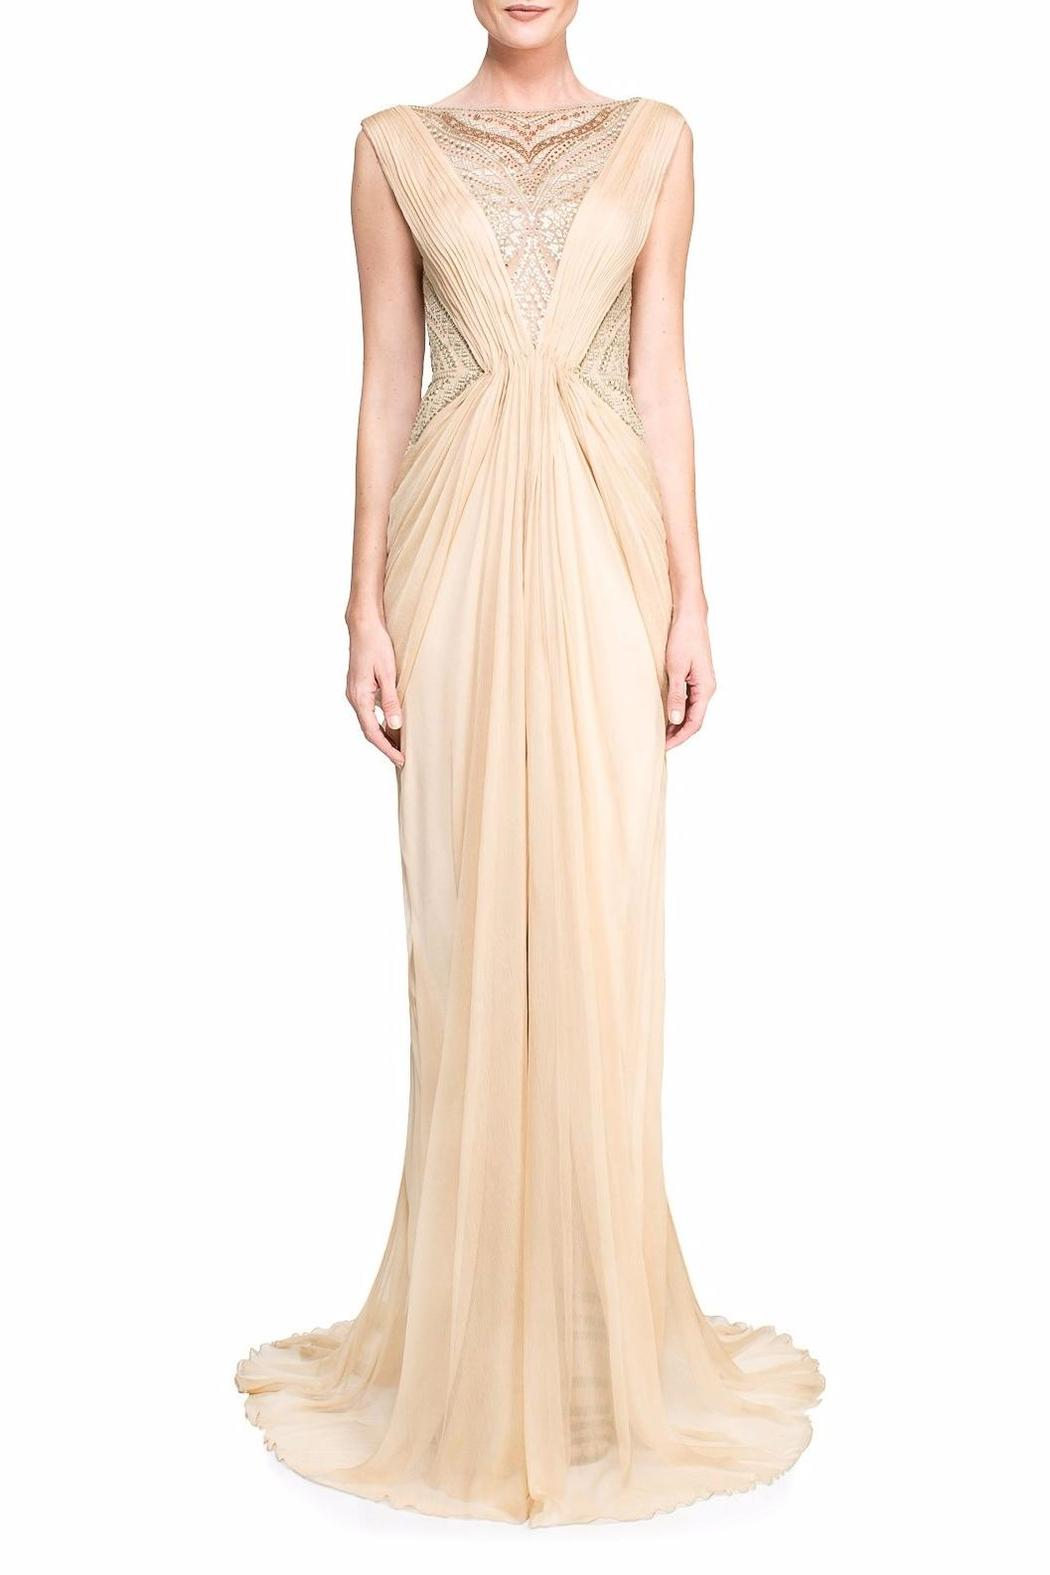 Tadashi Shoji Gia Gown from New Jersey by District 5 Boutique ...